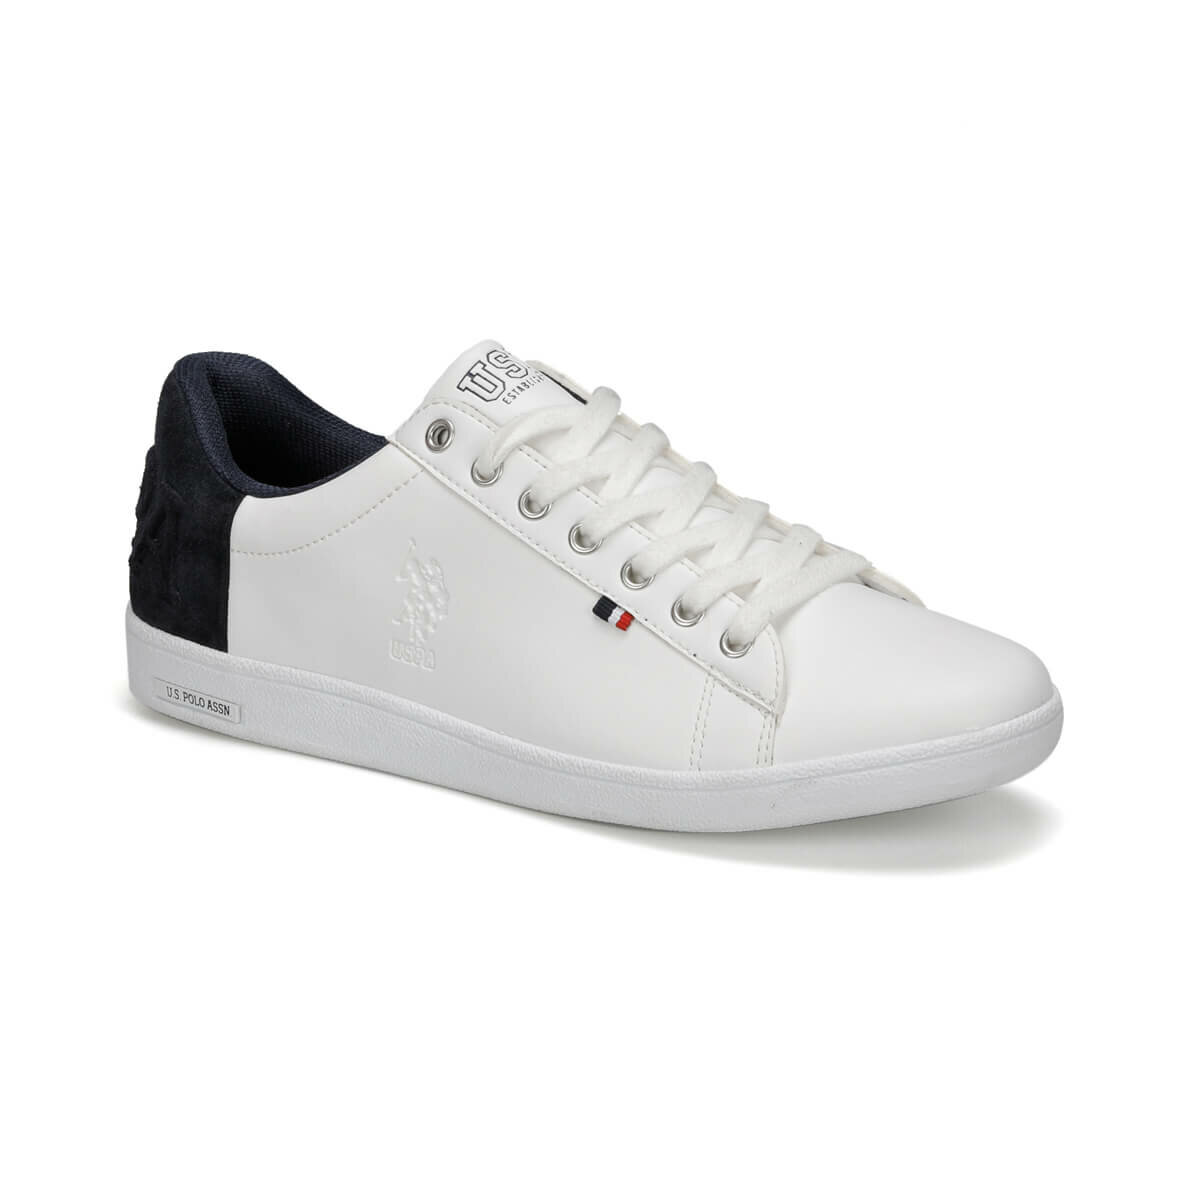 FLO PEDRO 9PR White Men 'S Sneaker Shoes U.S. POLO ASSN.